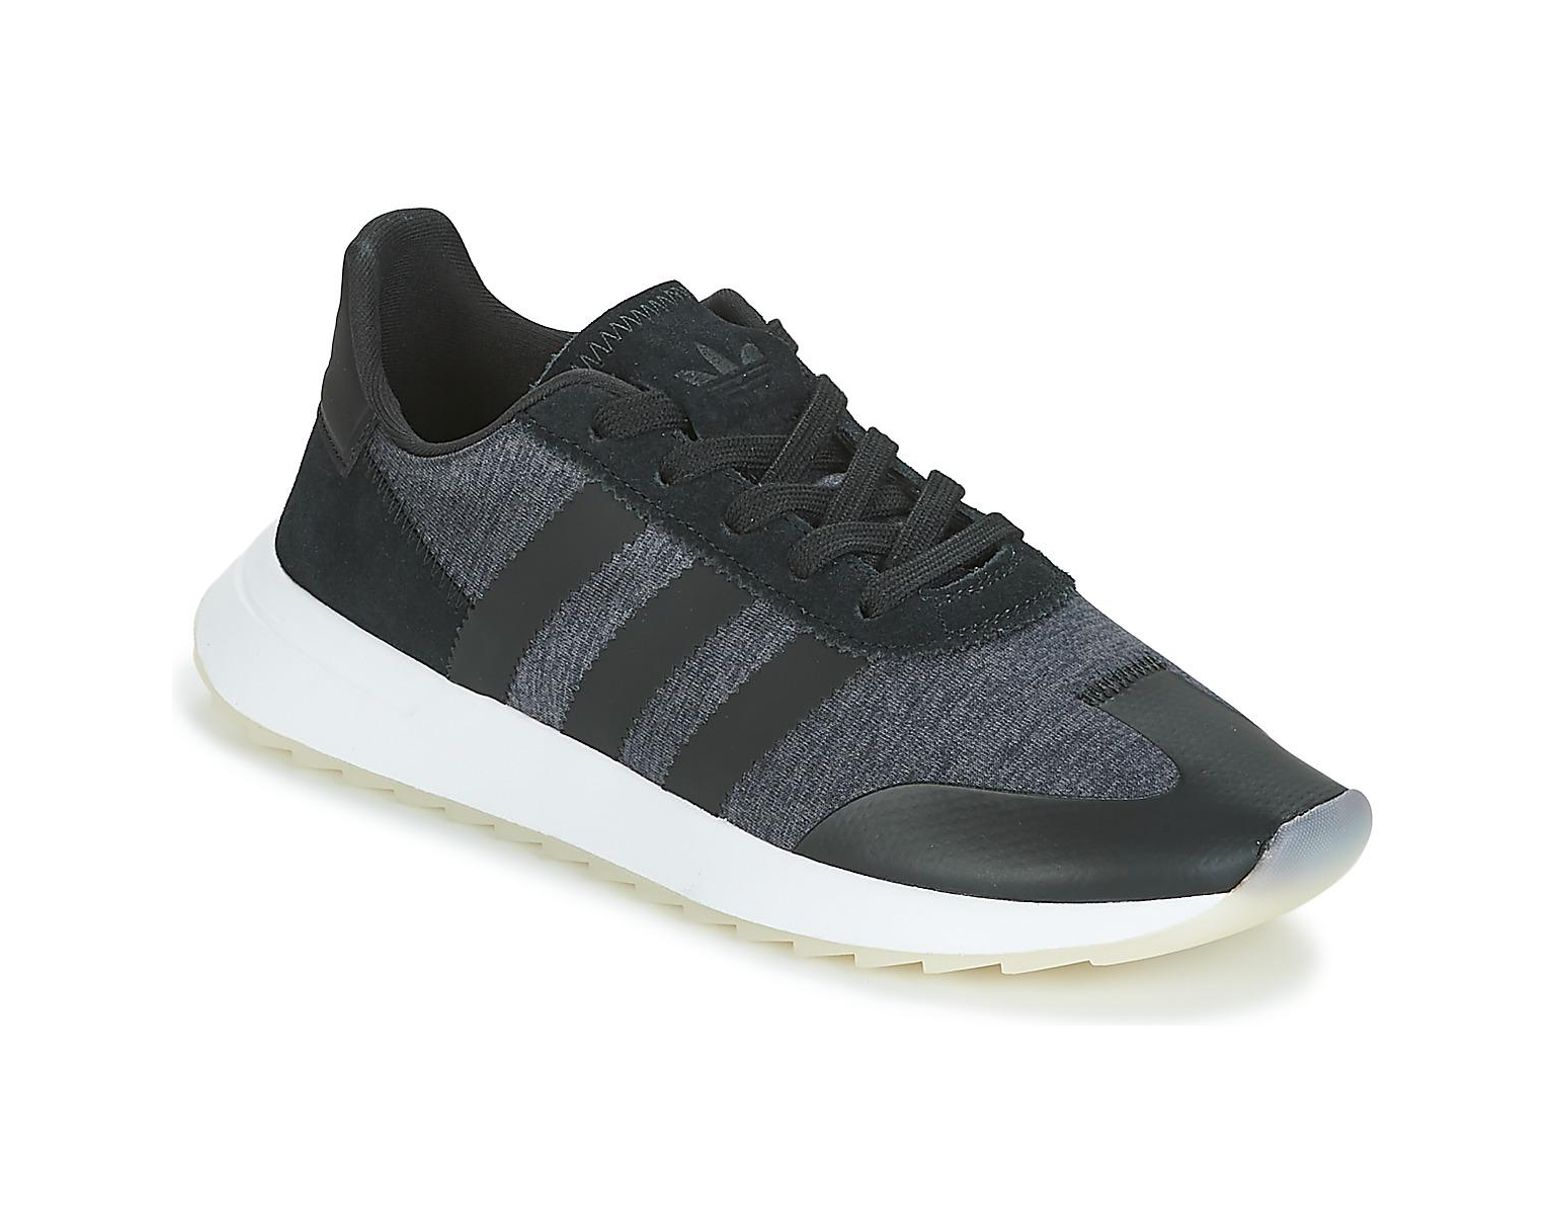 153e06d67c adidas Flb Runner W Shoes (trainers) in Black - Lyst